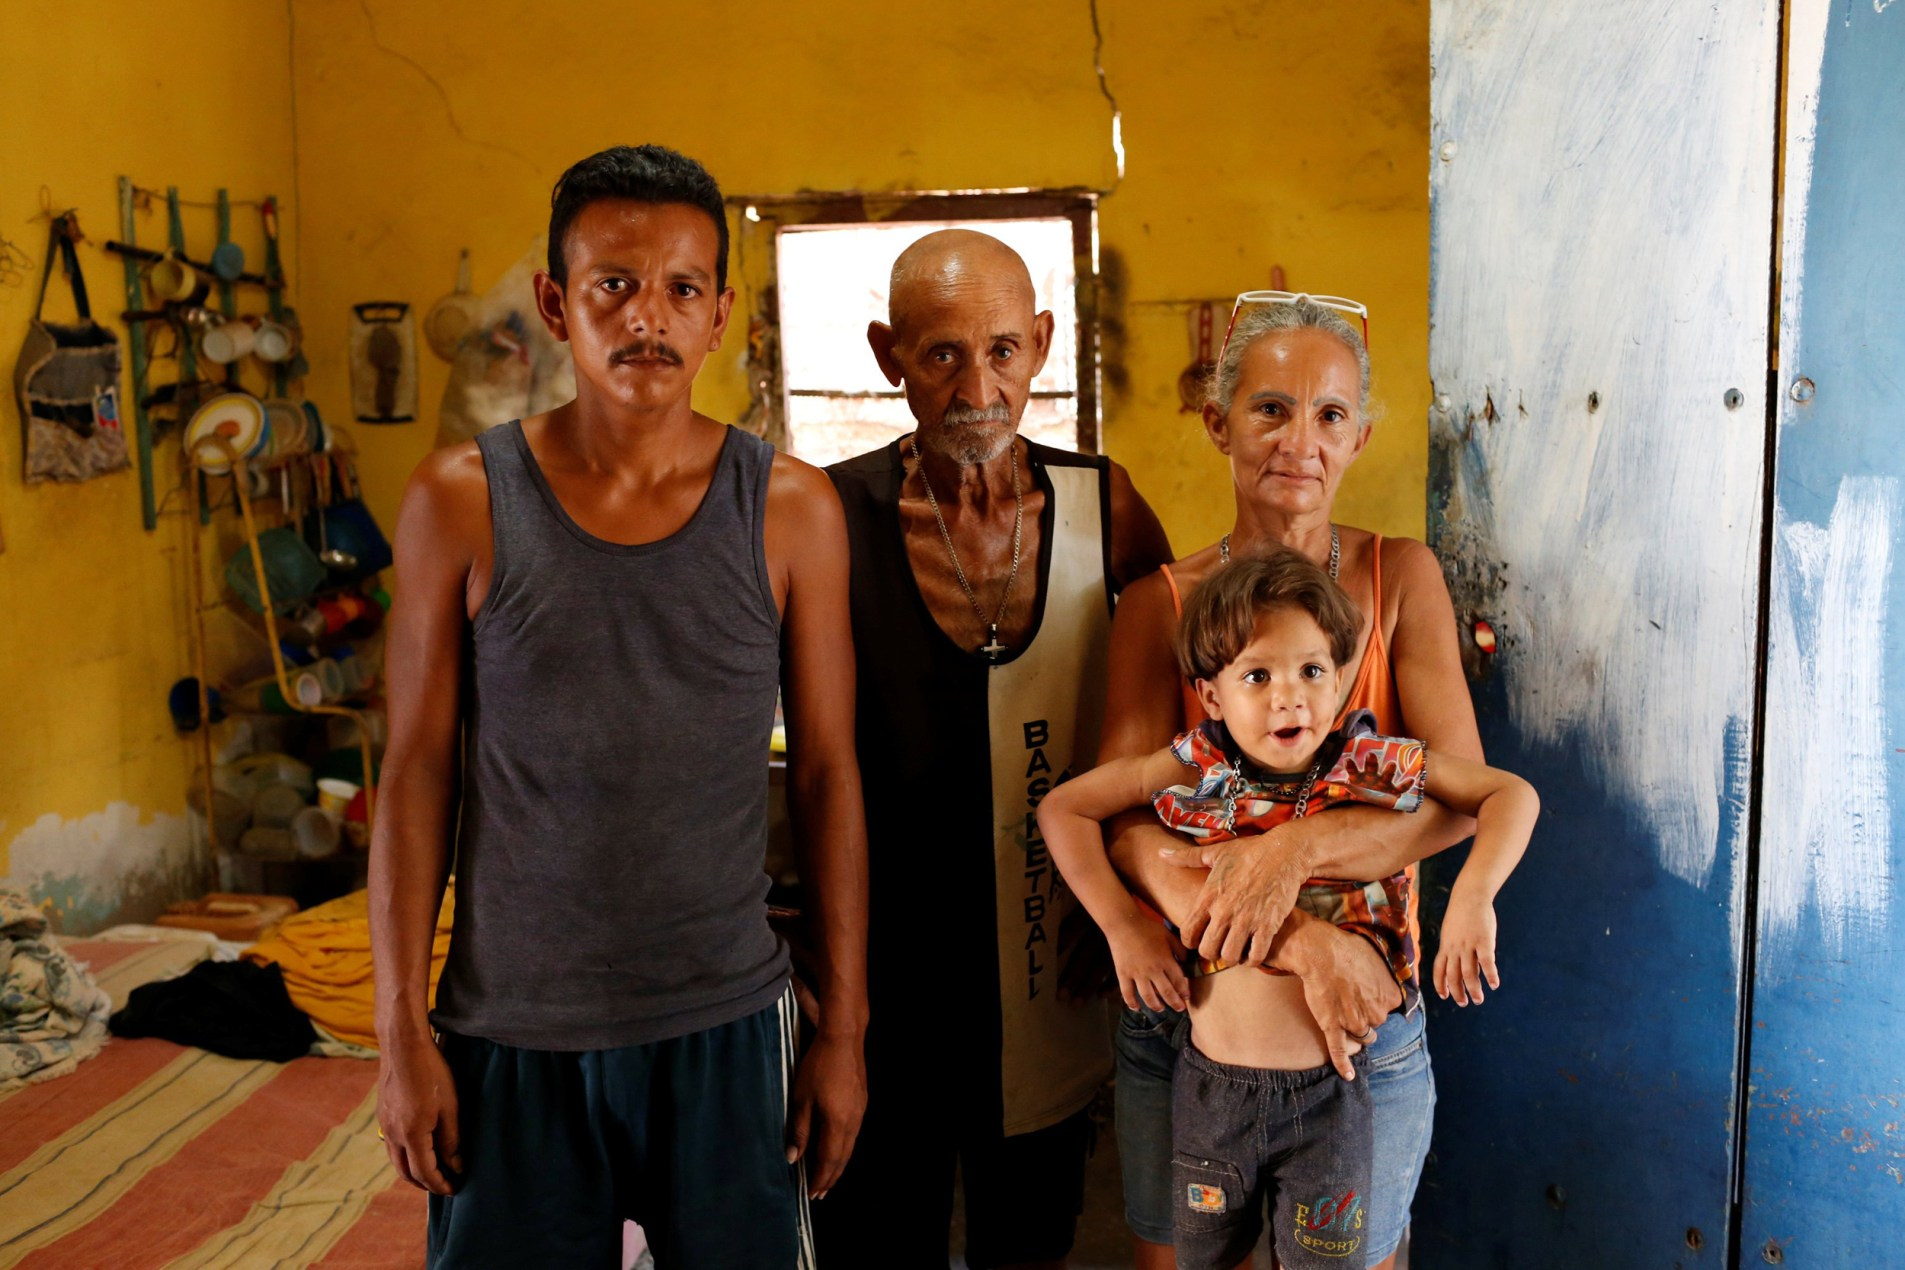 Image: Zulay Pulgar, holds her son Emmanuel, next to her husband Maikel Cuauro and her father Juan Pulgar while they pose for a portrait in their house in Punto Fijo